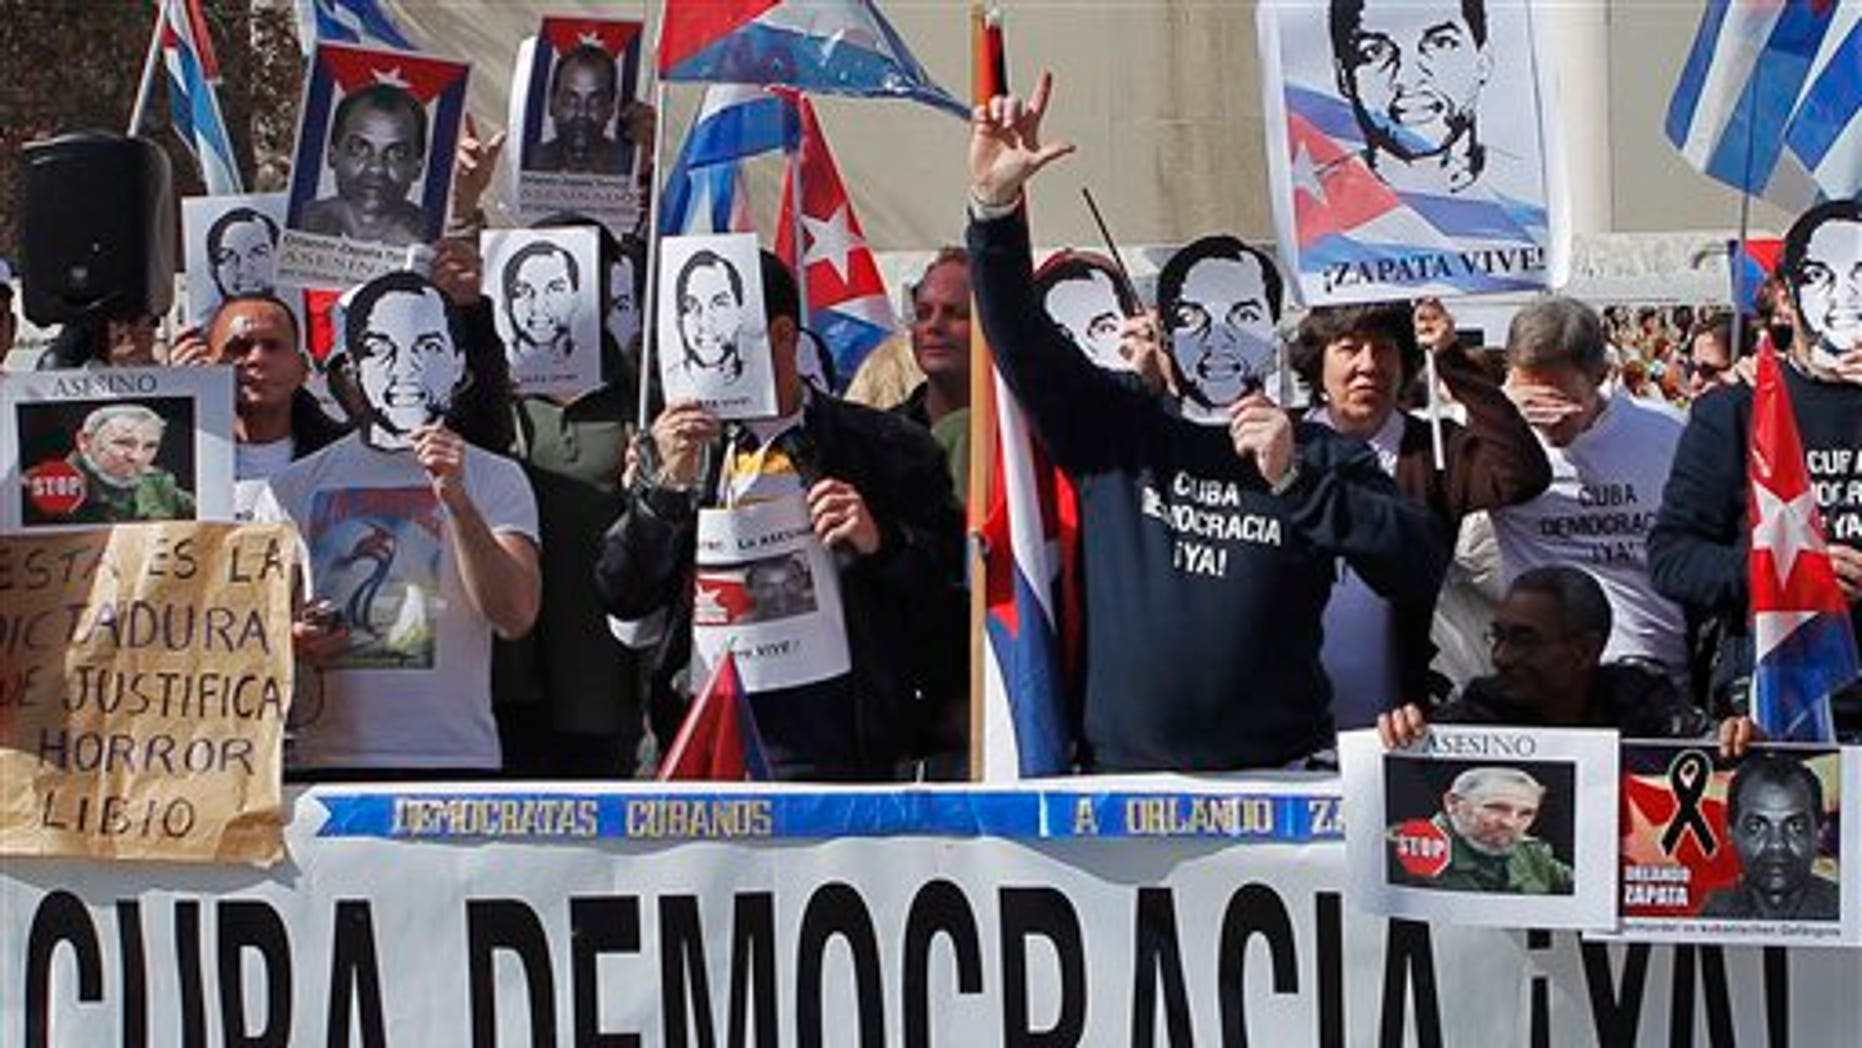 """Cuban dissidents in Spain hold a banner reading: """"Cuba democracy now!"""" during a rally outside the Cuban Embassy in Madrid Saturday Feb. 26, 2011. The protest marks the first anniversary of the death of Cuban dissident Orlando Zapata who died in Cuba after long hunger strike. (AP Photo/Andres Kudacki)"""